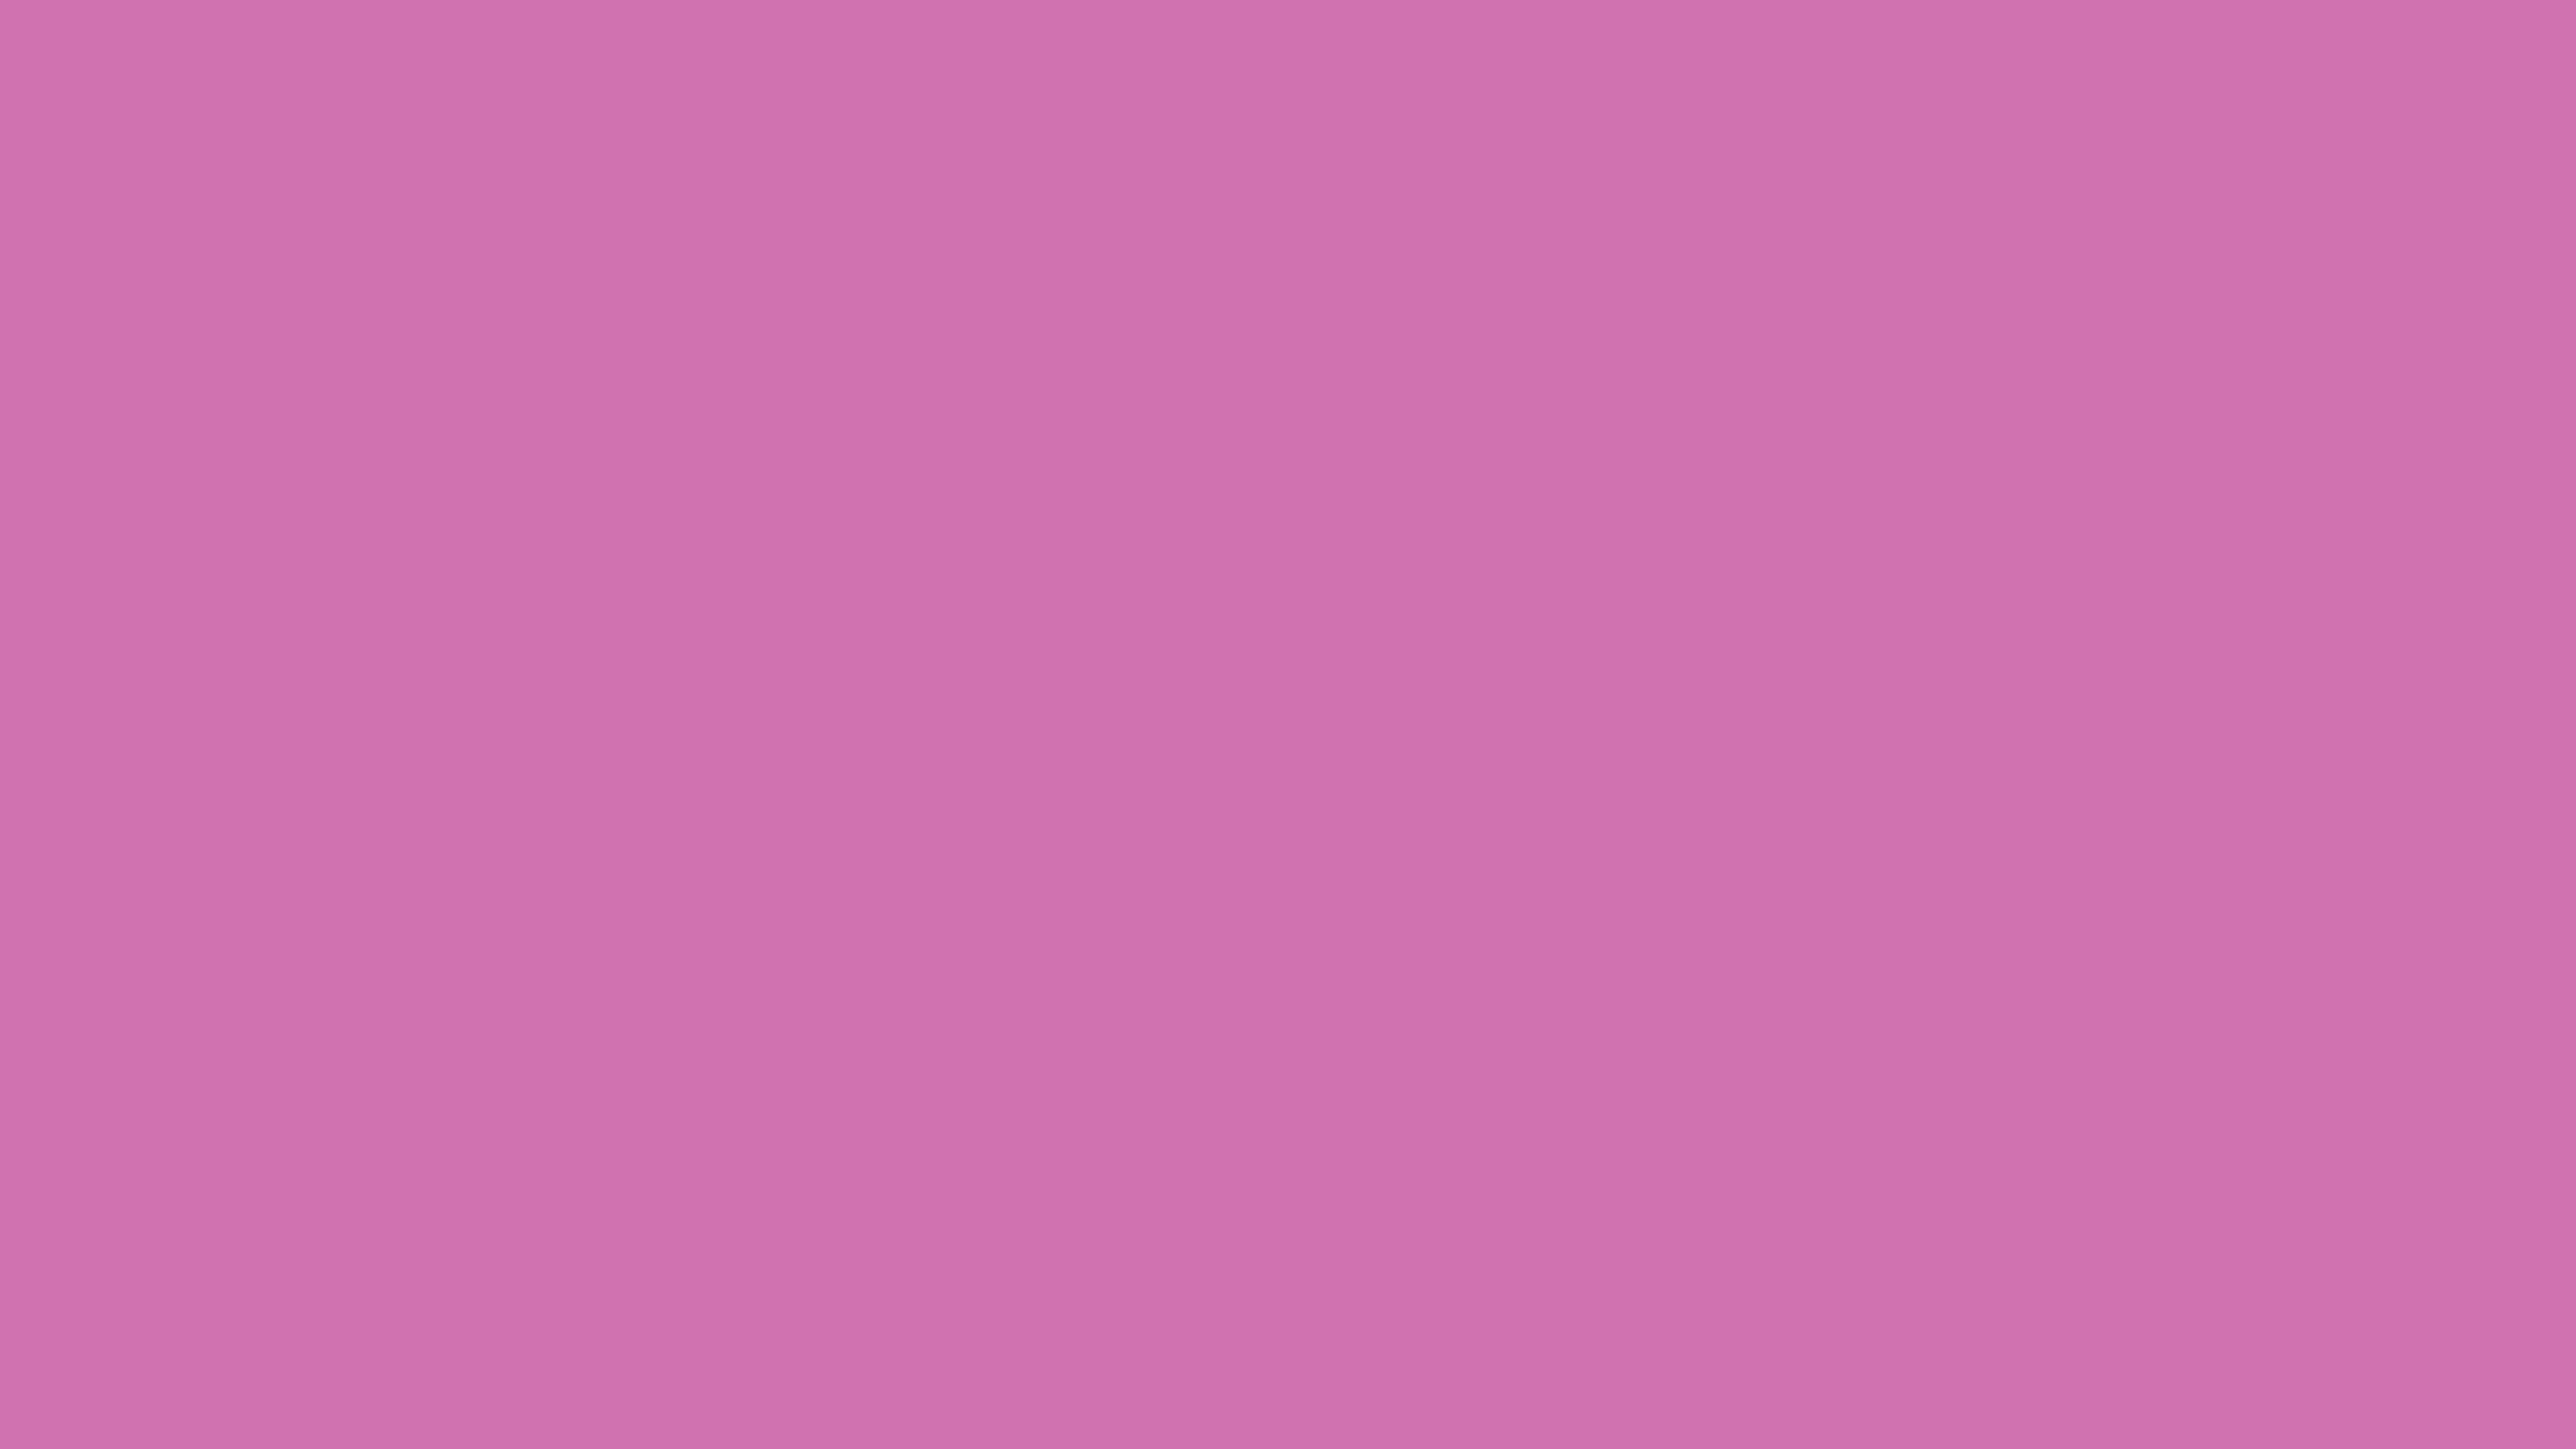 4096x2304 Sky Magenta Solid Color Background